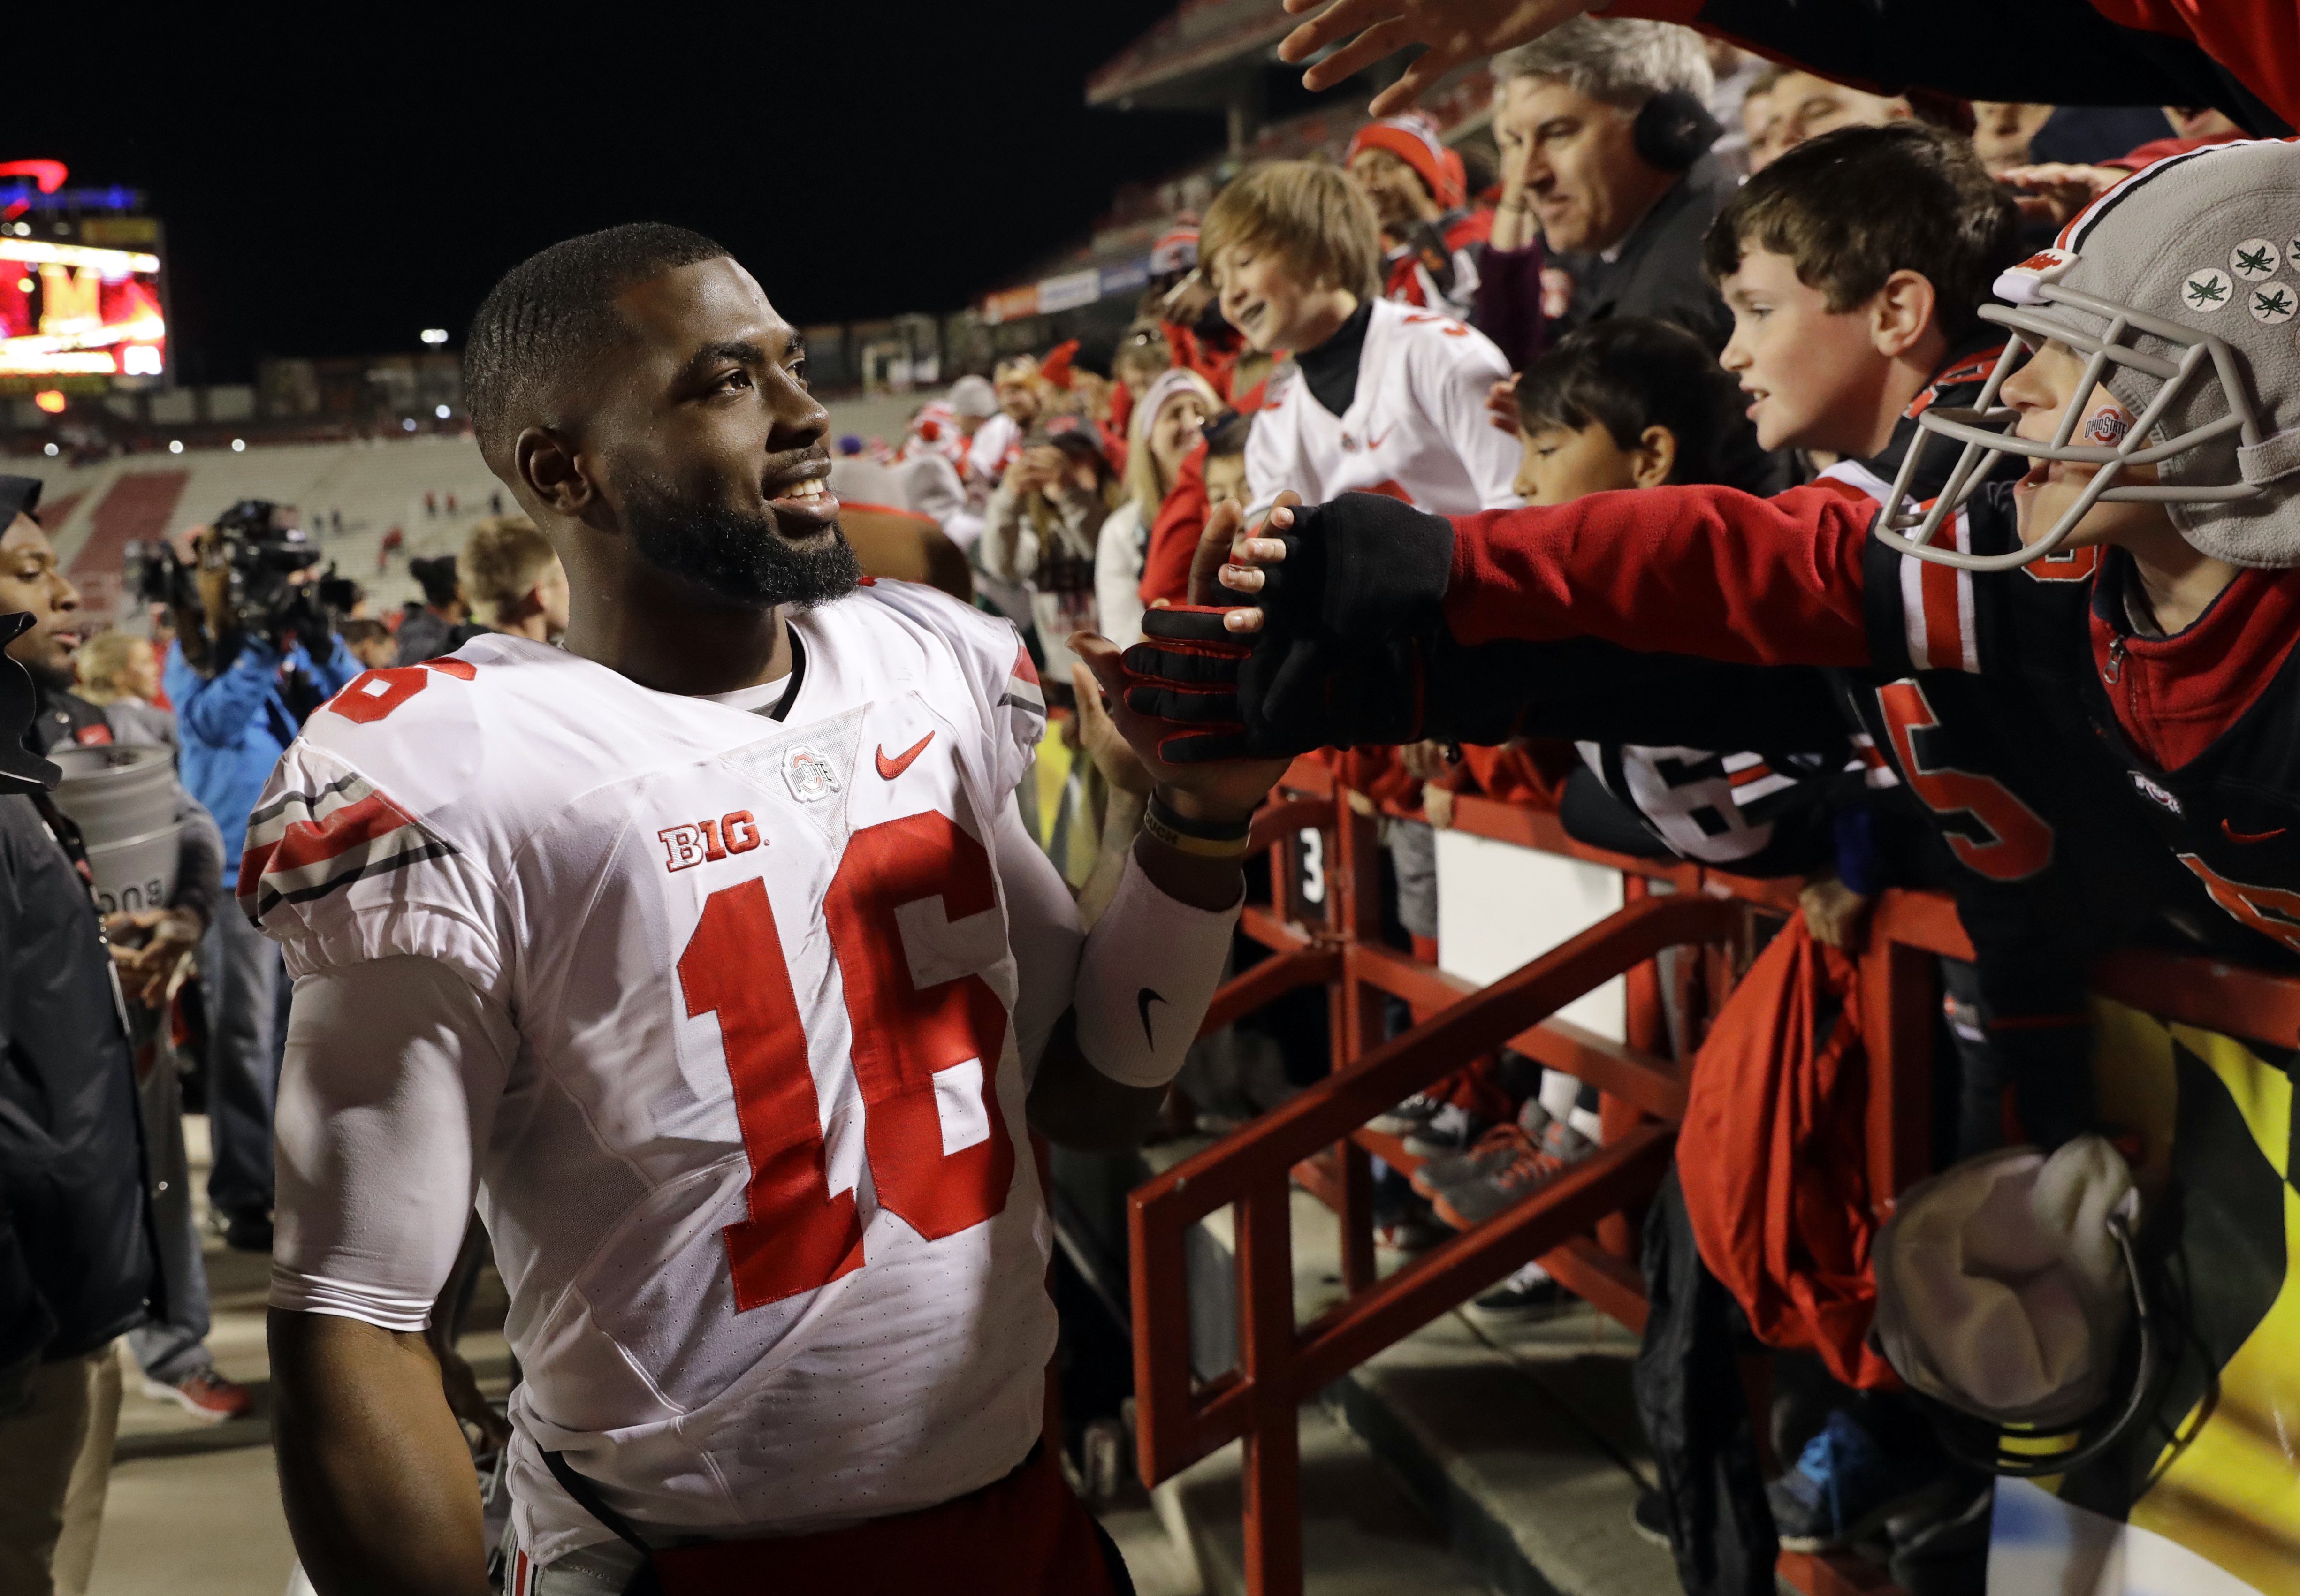 Ohio State quarterback J.T. Barrett greets fans after an NCAA college football game against Maryland in College Park, Md., Saturday, Nov. 12, 2016. (AP Photo/Patrick Semansky)